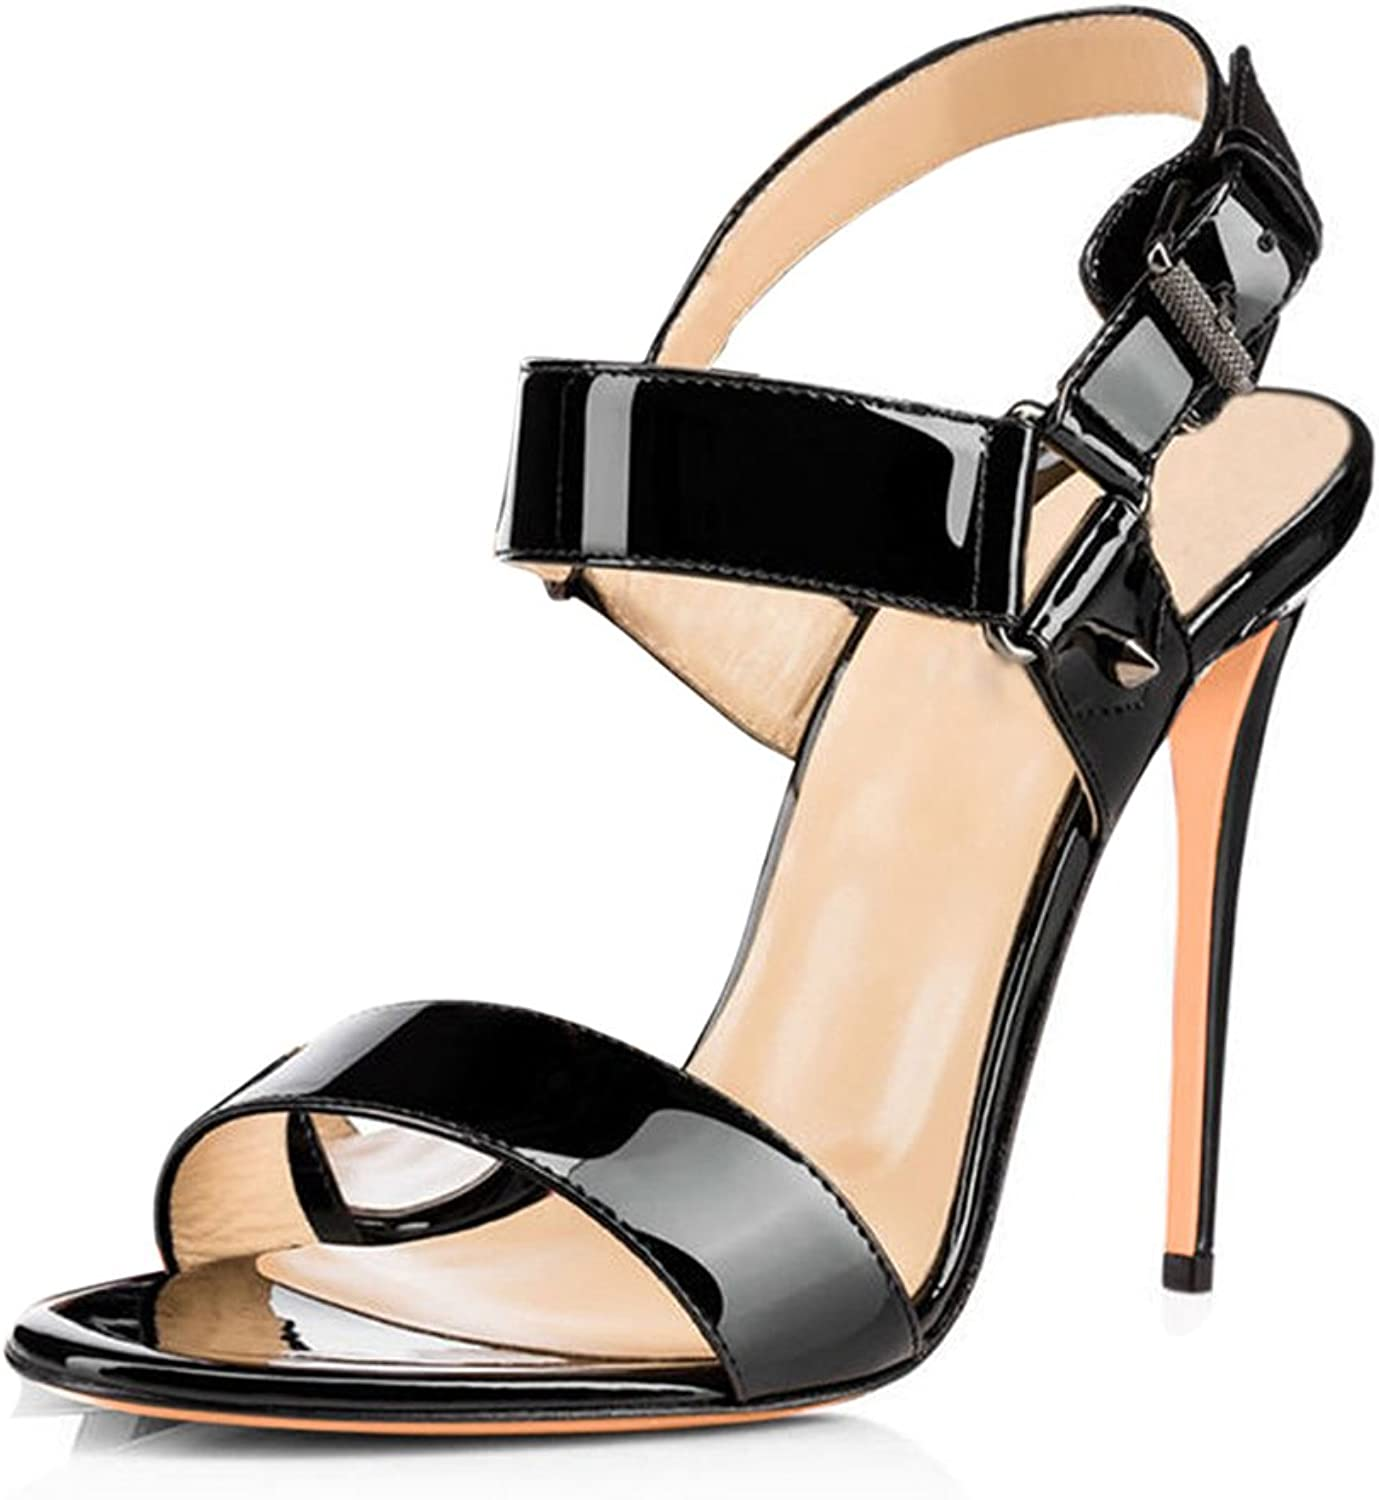 Women's Buckle High Heel Sandals Patent Leather shoes Fashion Round Head shoes Stiletto Sandals(Heel Height 11-13cm)